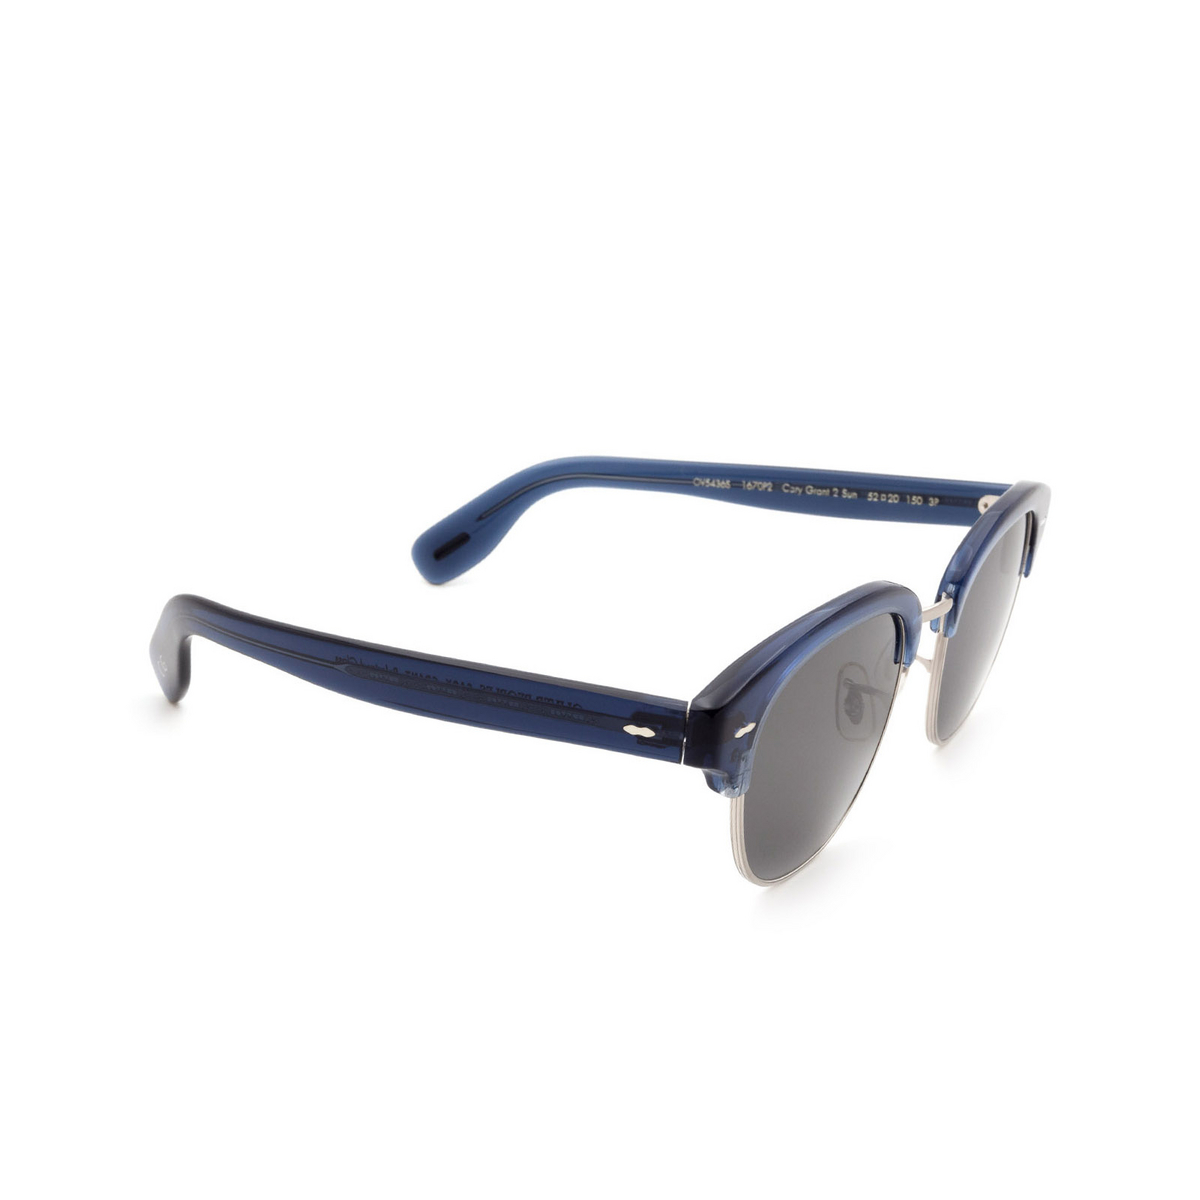 Oliver Peoples® Square Sunglasses: Cary Grant 2 Sun OV5436S color Deep Blue 1670P2.